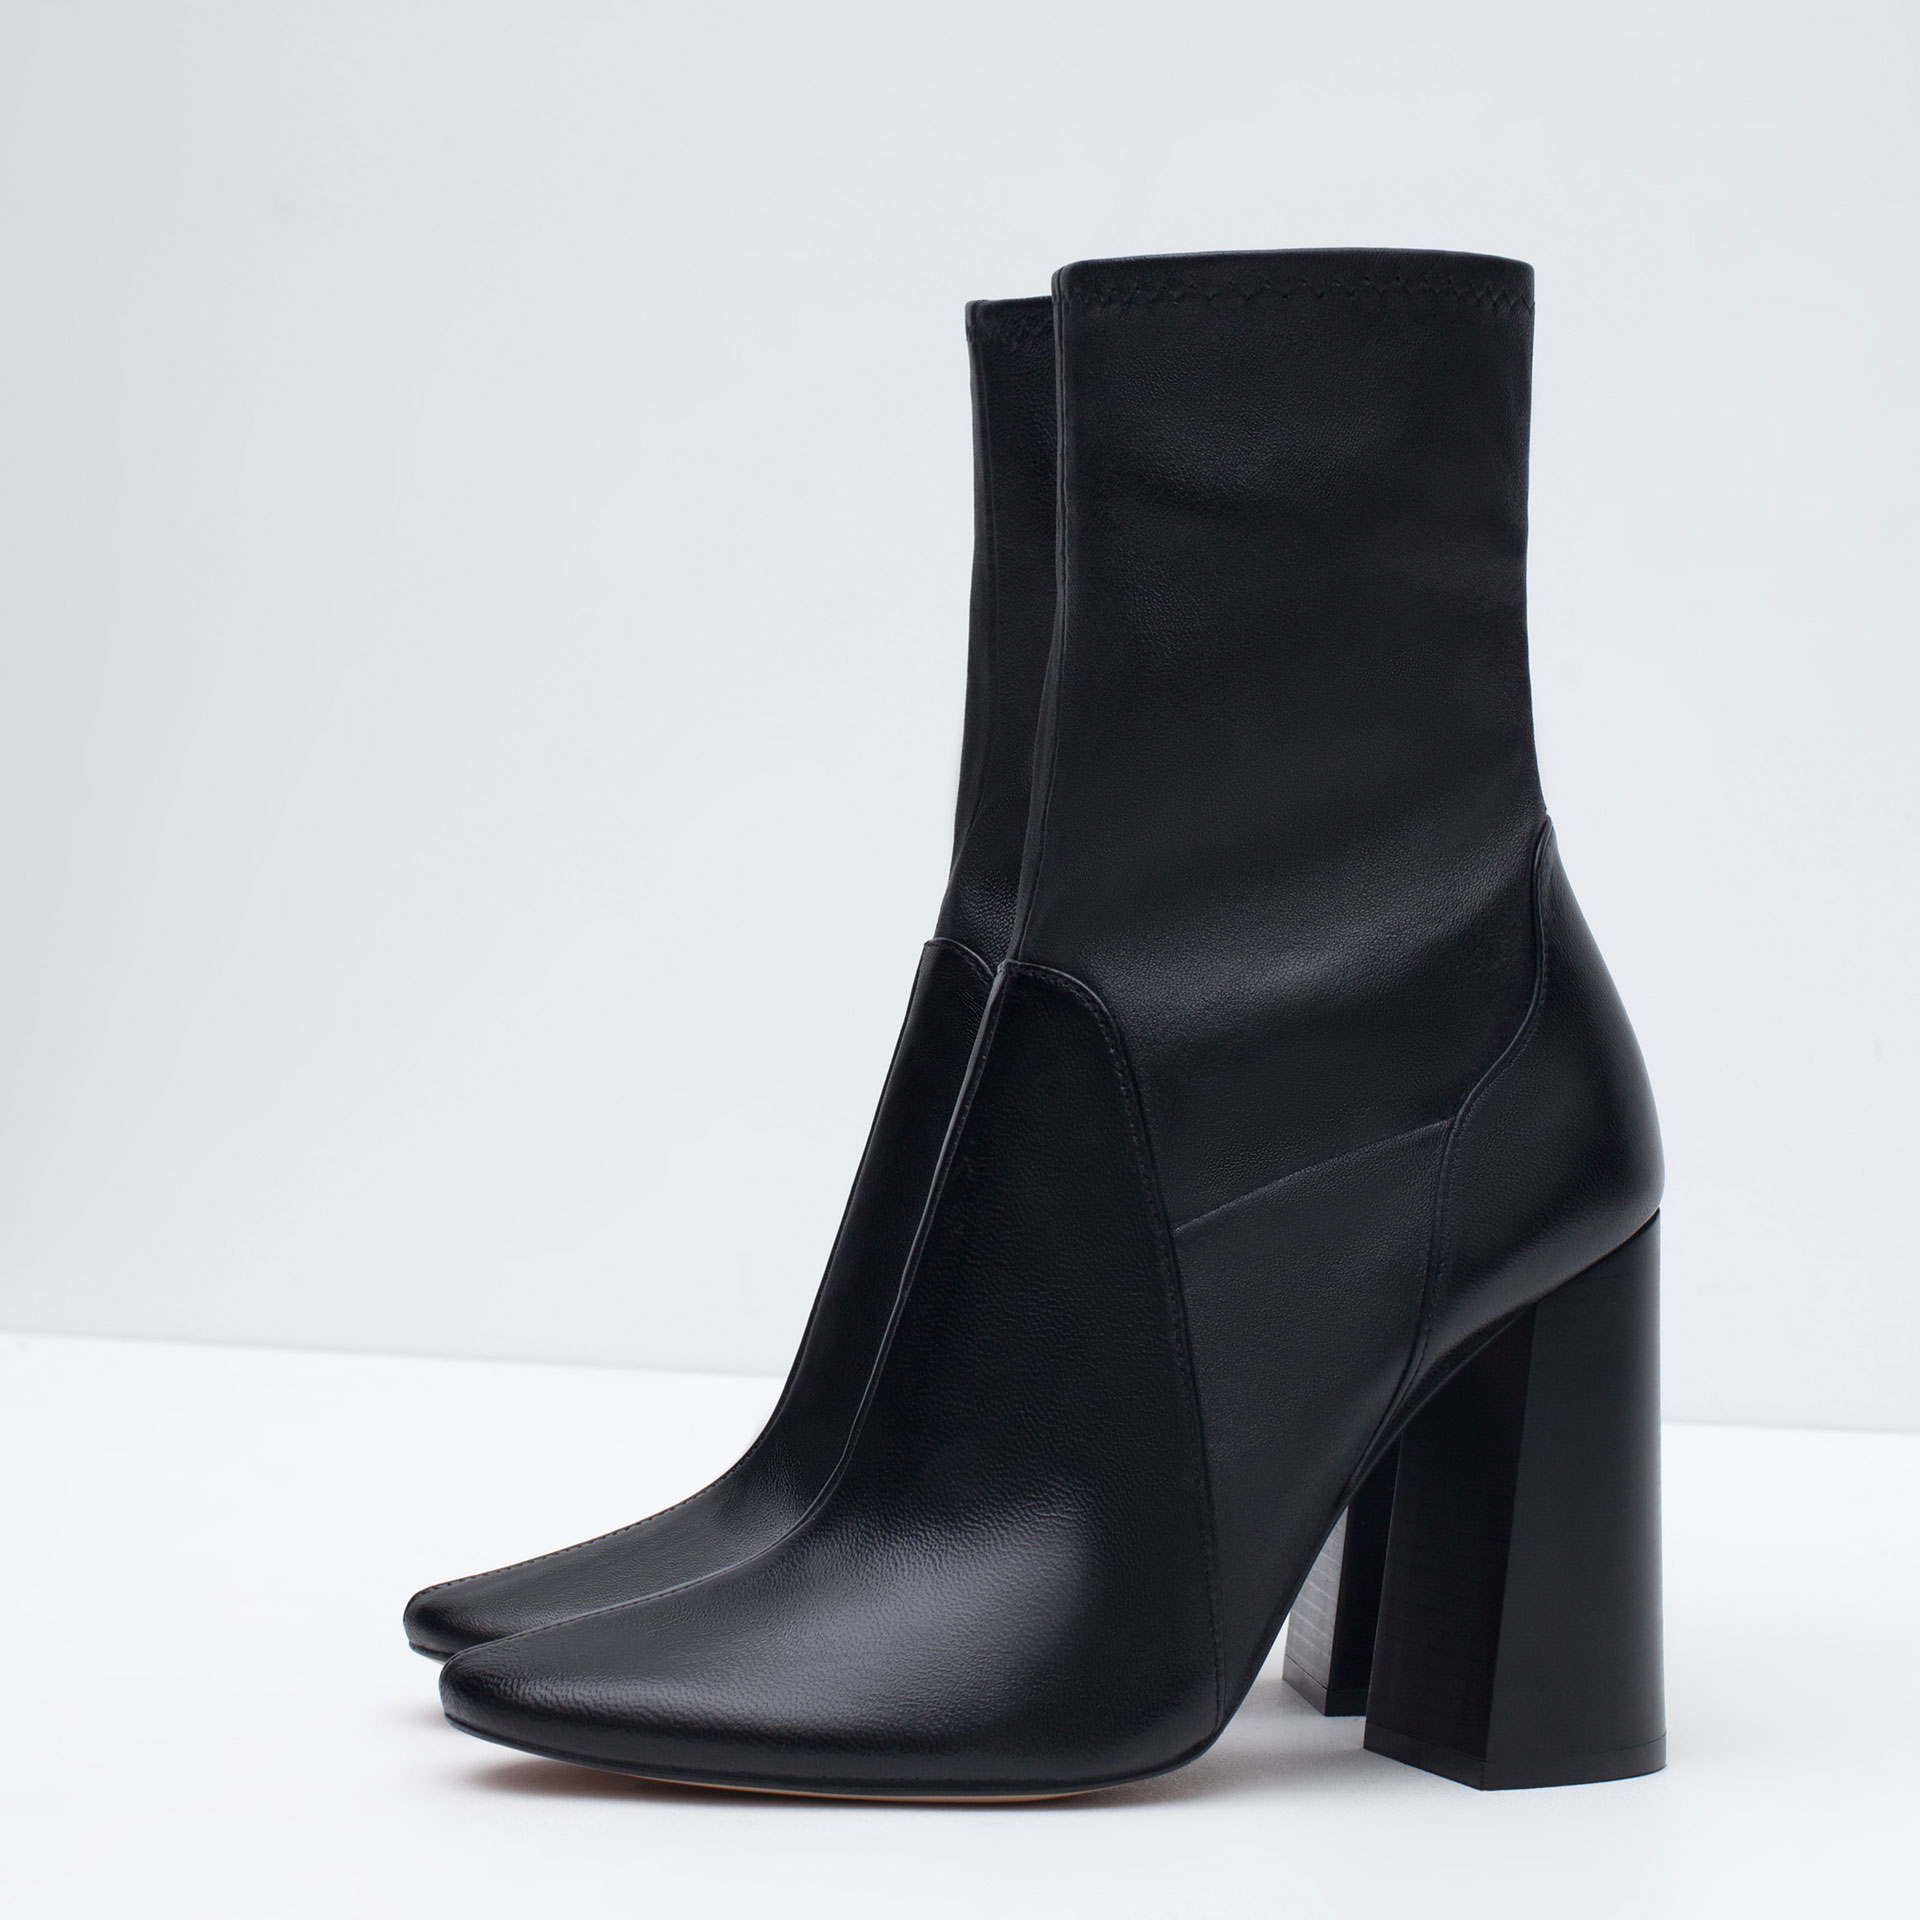 zara leather high heel ankle boots in black lyst